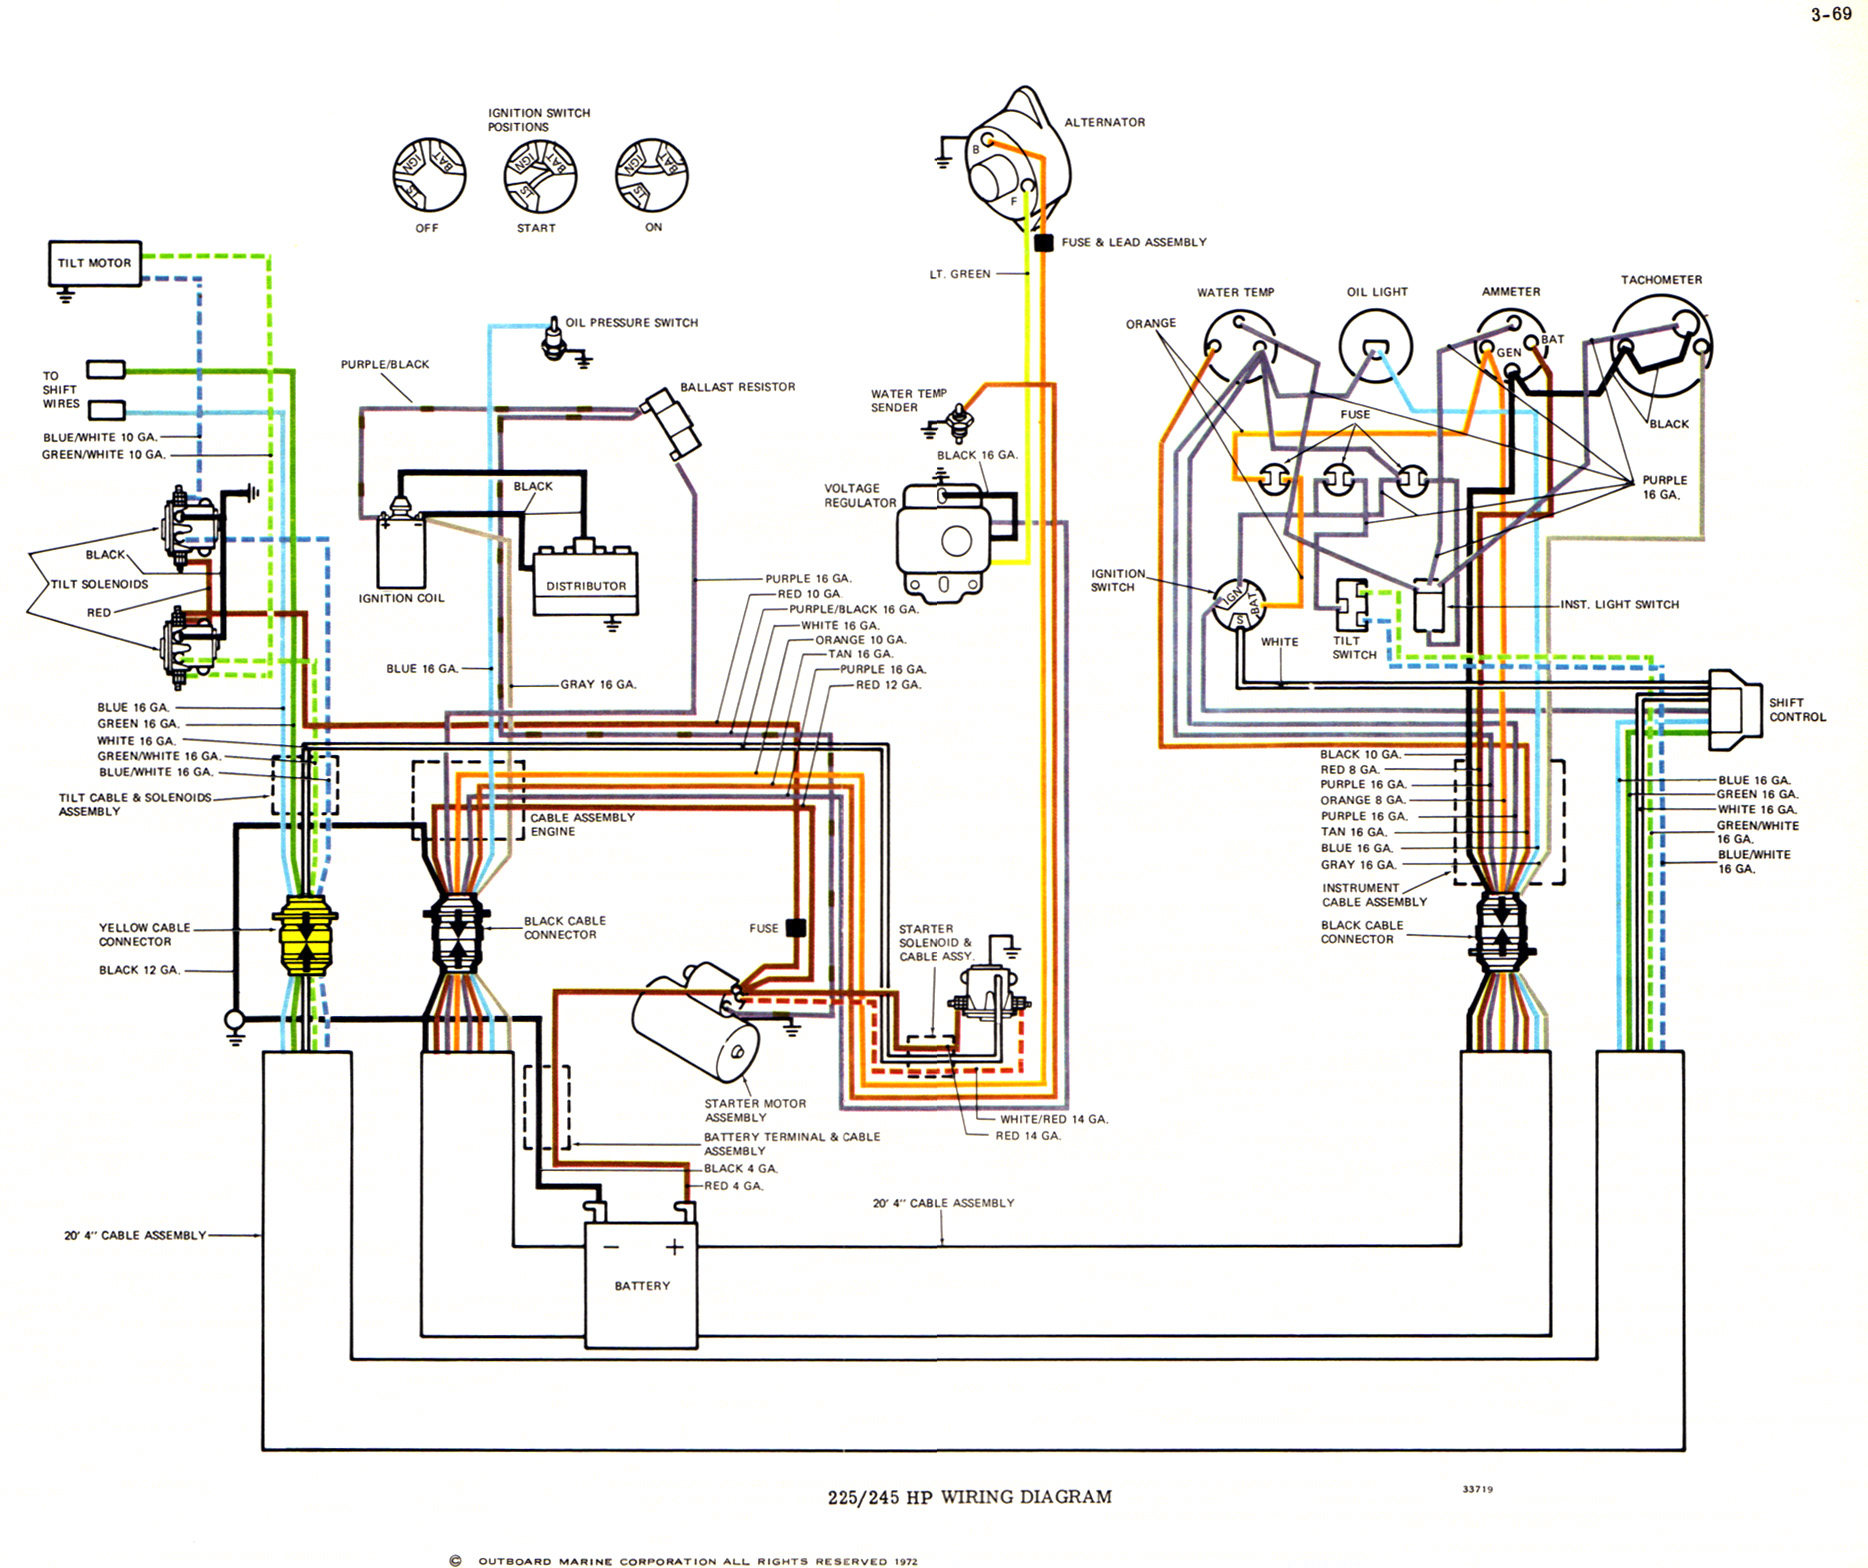 73_OMC_V8_all_big marine tachometer wiring diagram marine ignition switch wiring boat switch wiring diagram at panicattacktreatment.co